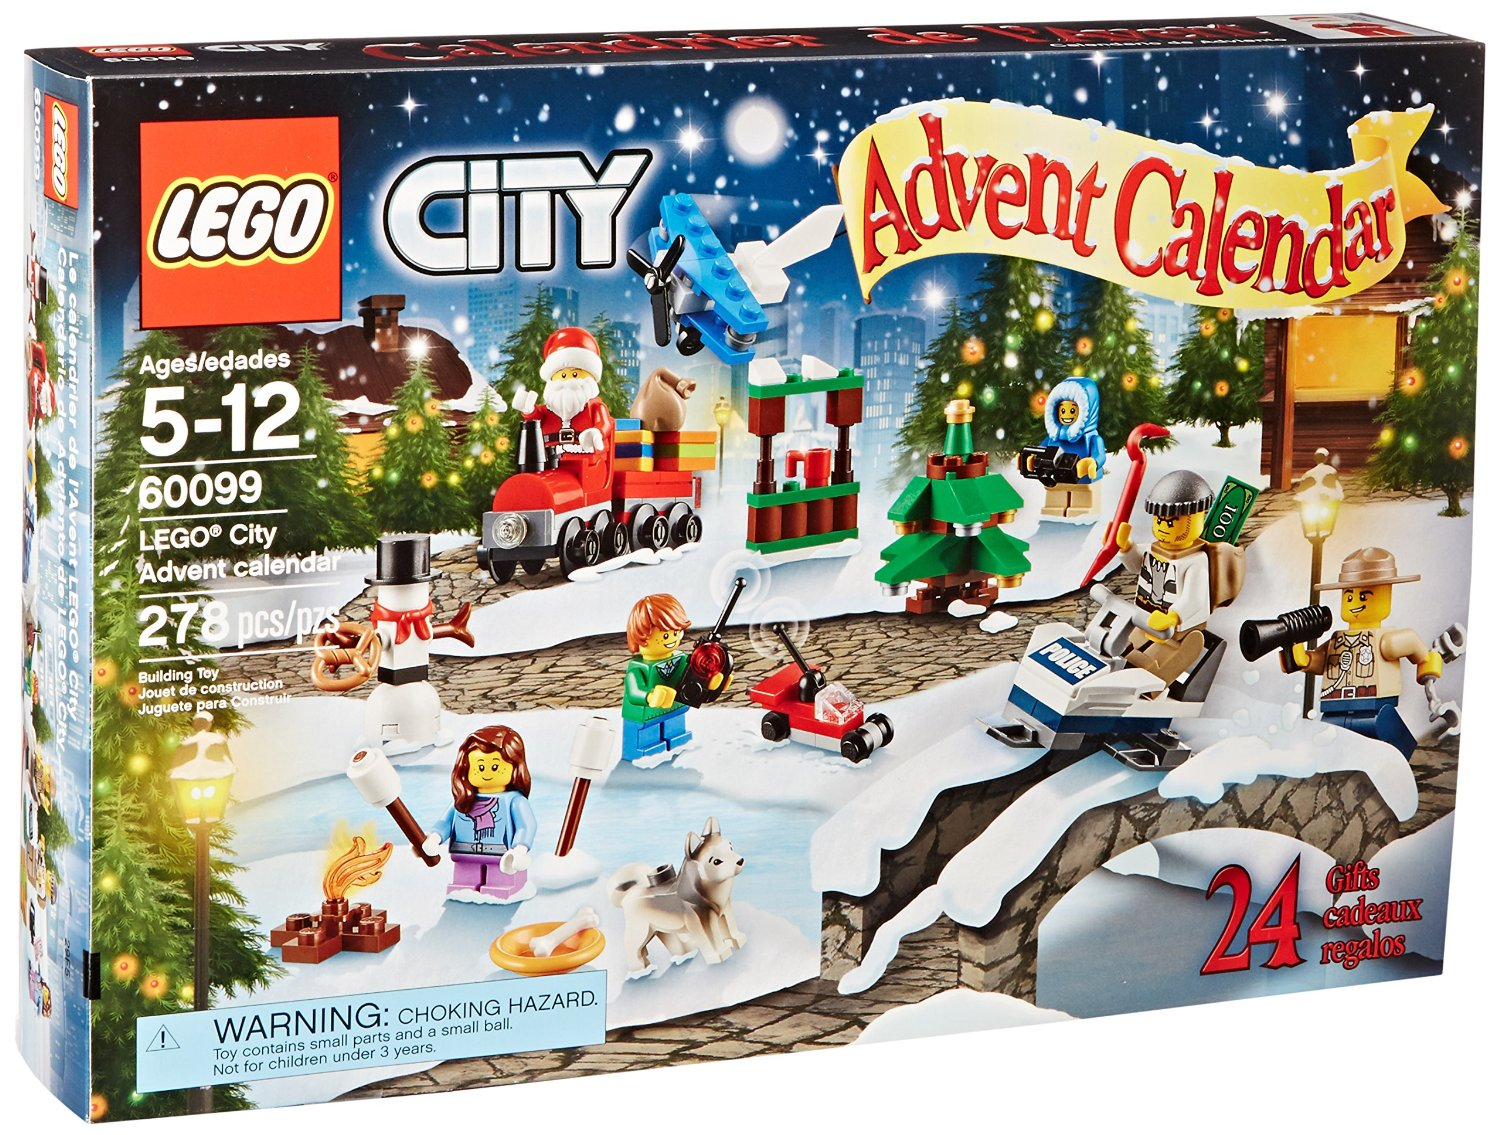 Image Christmas Sets 2019.Lego Christmas Sets 2019 Best Container Store Products